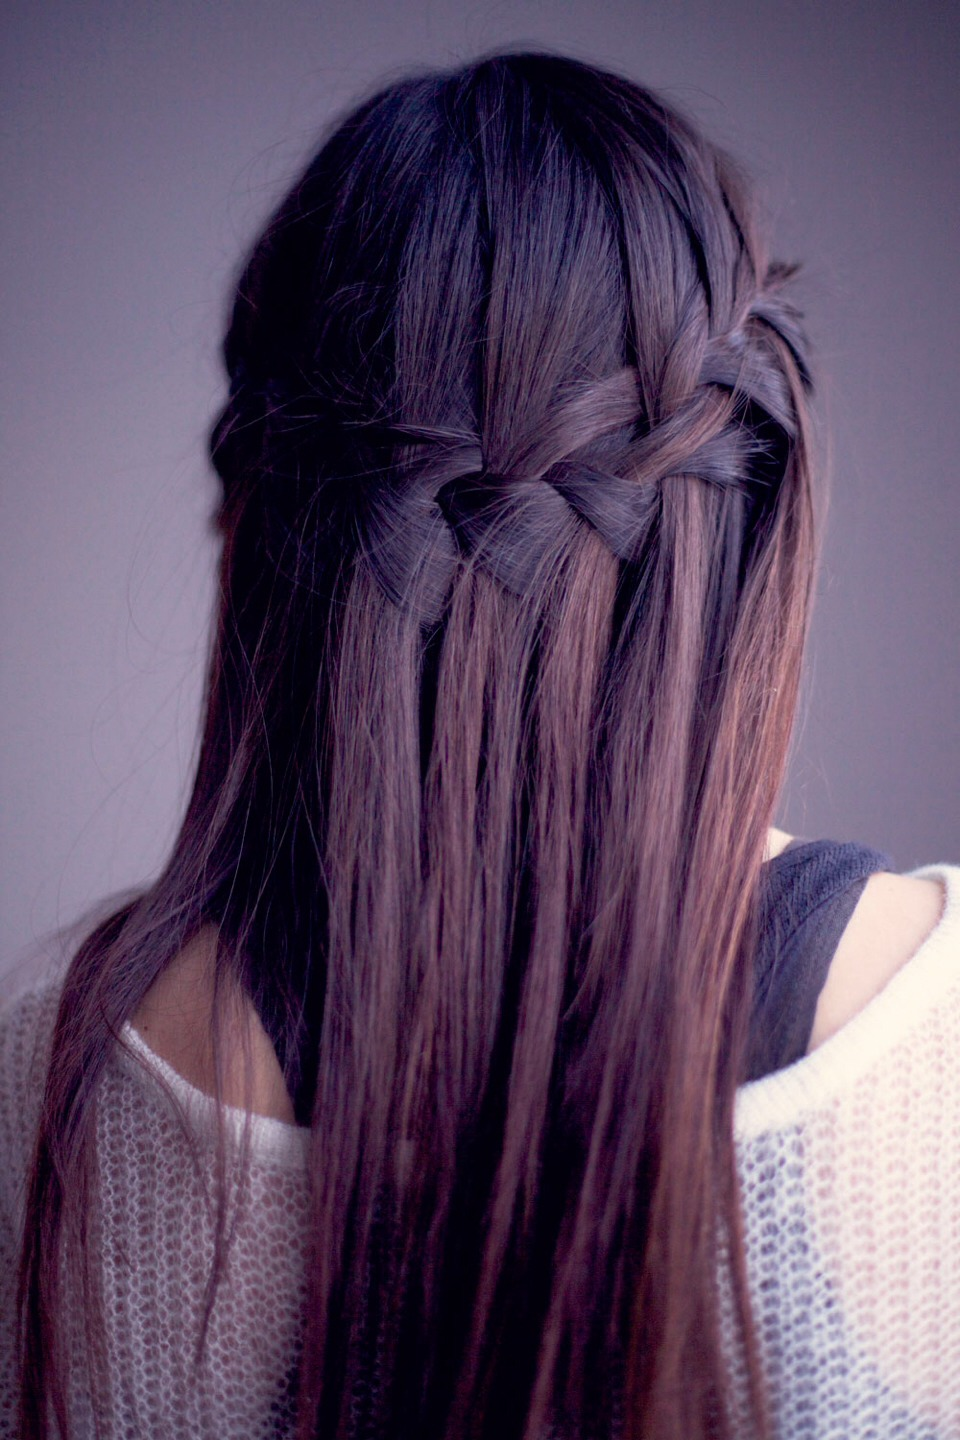 This is how to make a water fall braid!